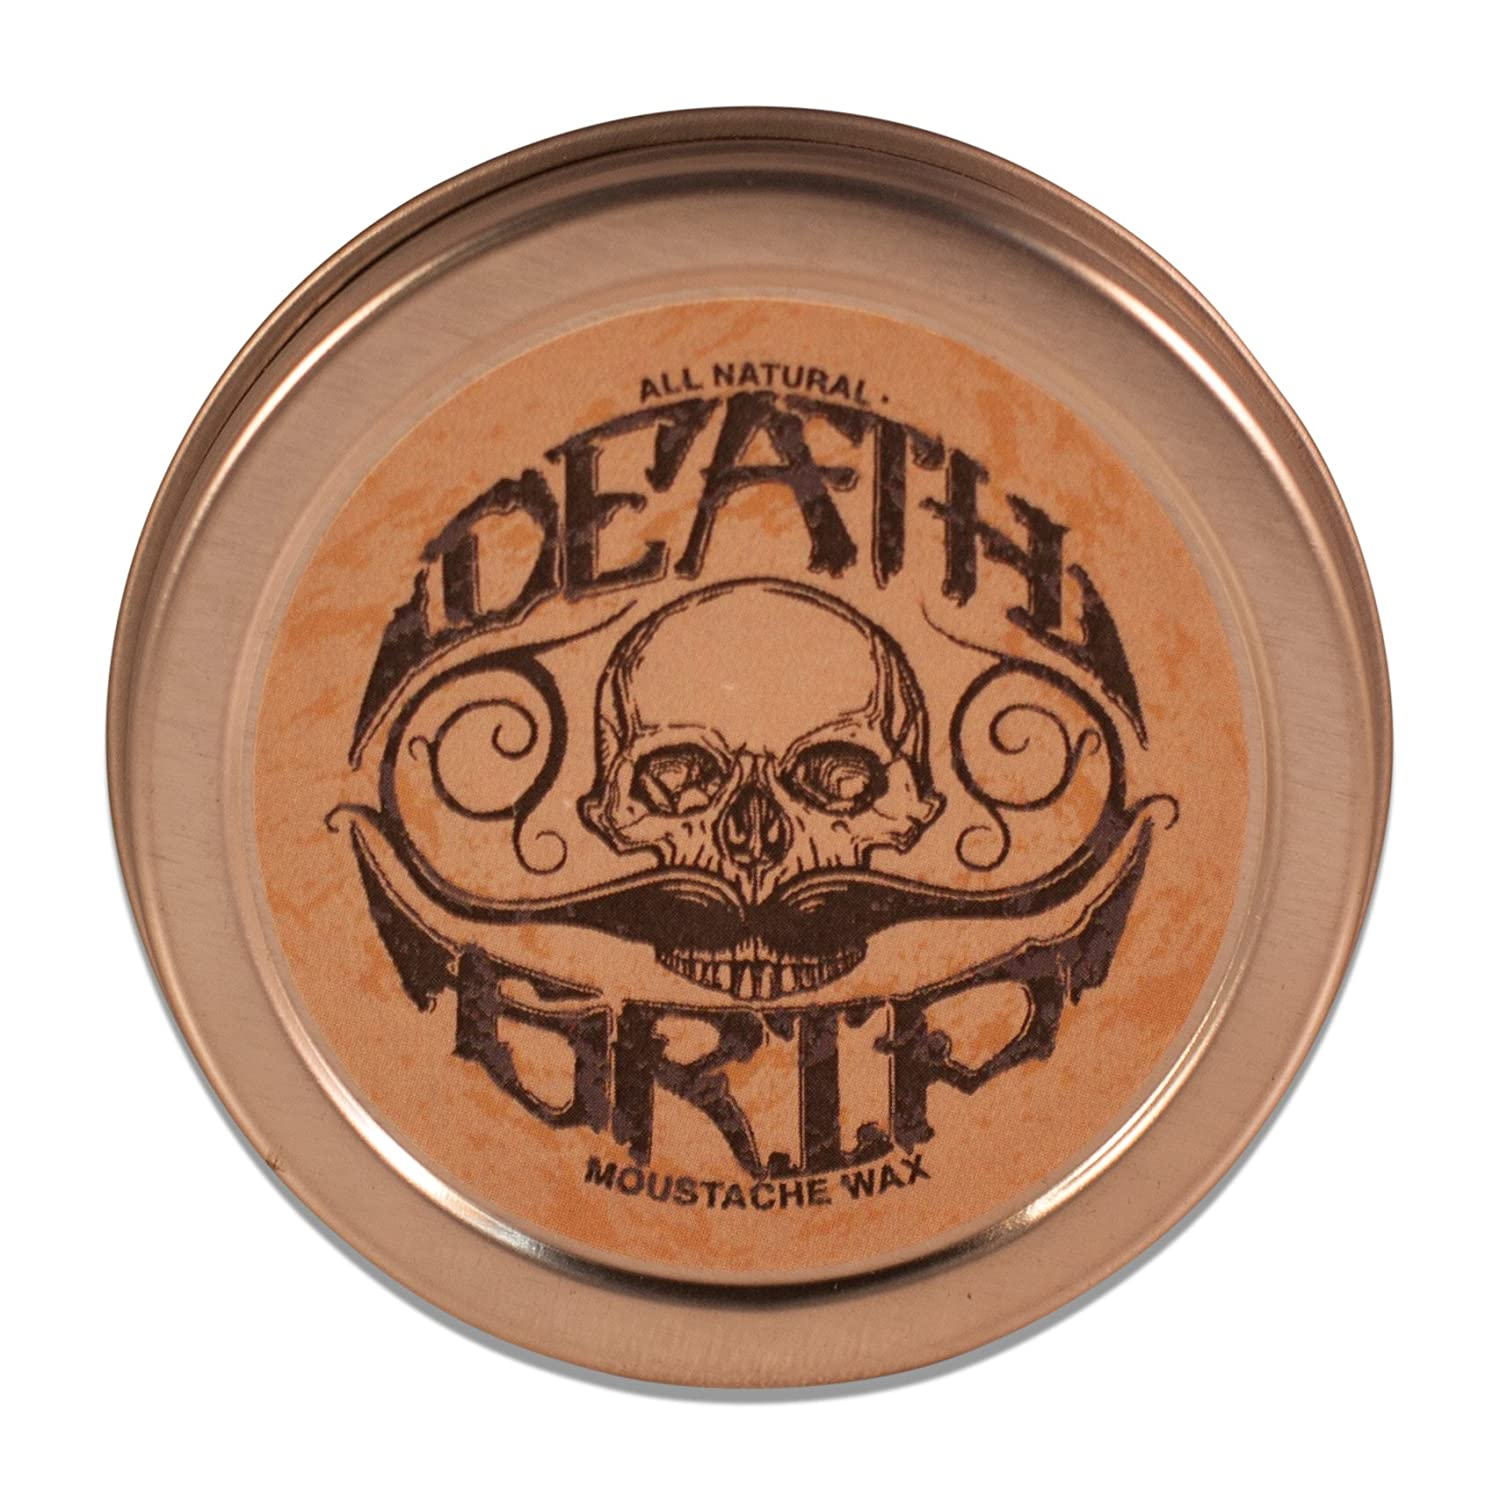 Death Grip Moustache Wax, All-Natural, 1 oz. The Vintage Grooming Company MW-002